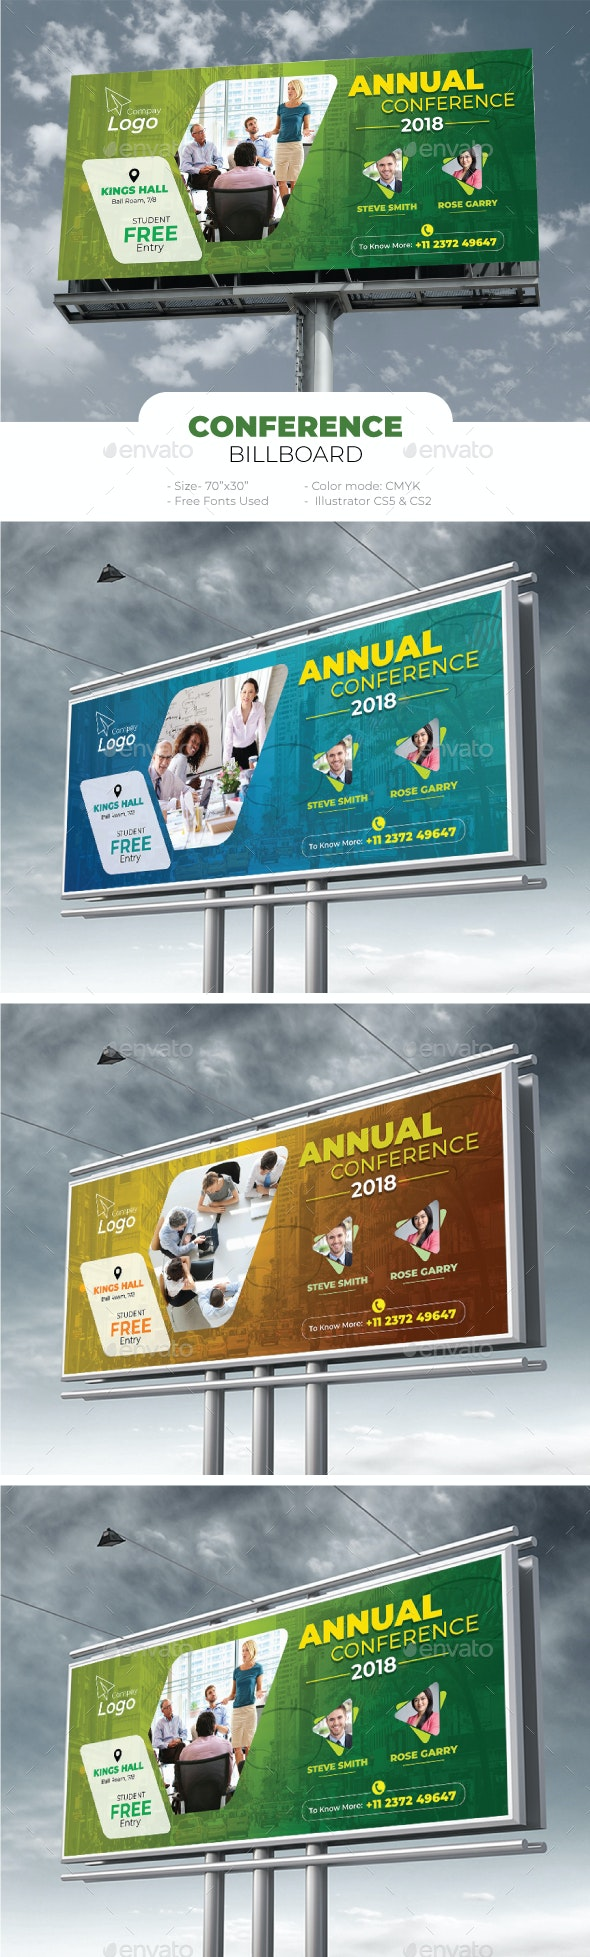 Corporate Conference Billboard - Signage Print Templates